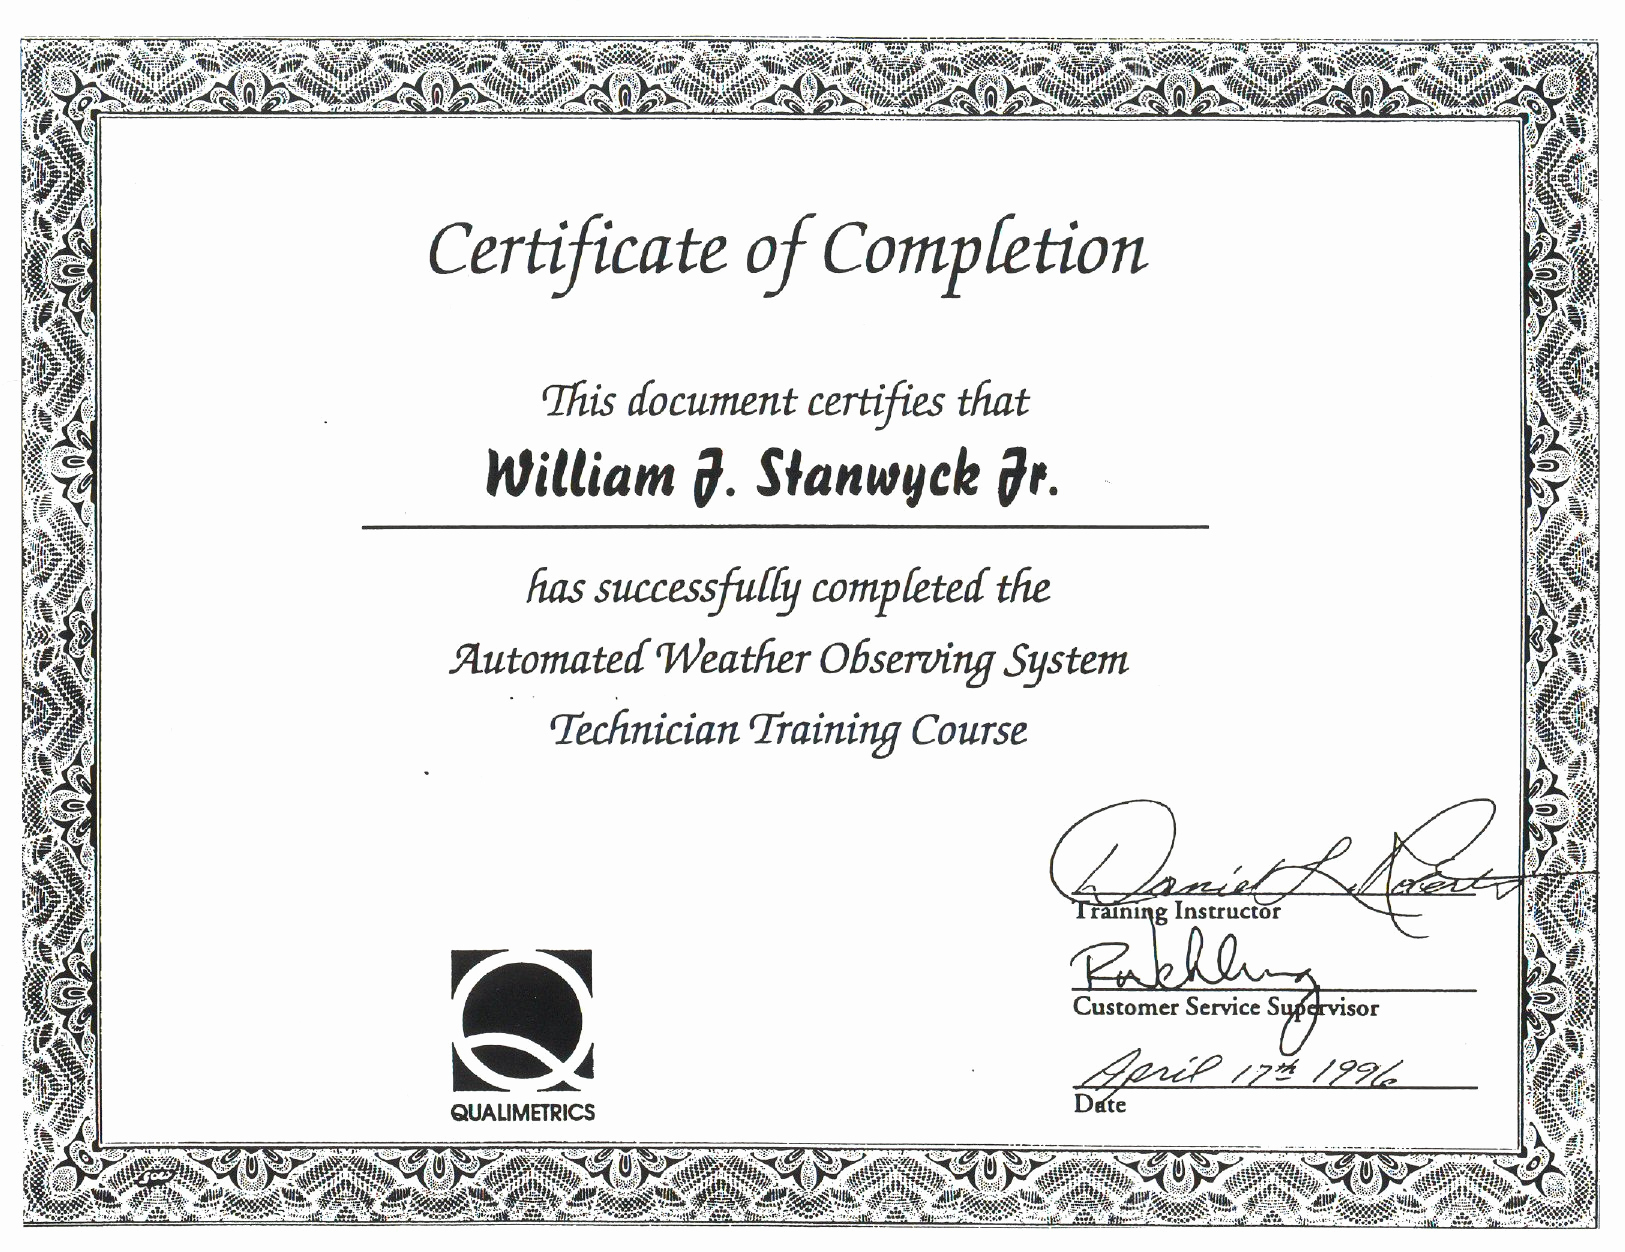 Certificate Of Completion Template Free Awesome 13 Certificate Of Pletion Templates Excel Pdf formats